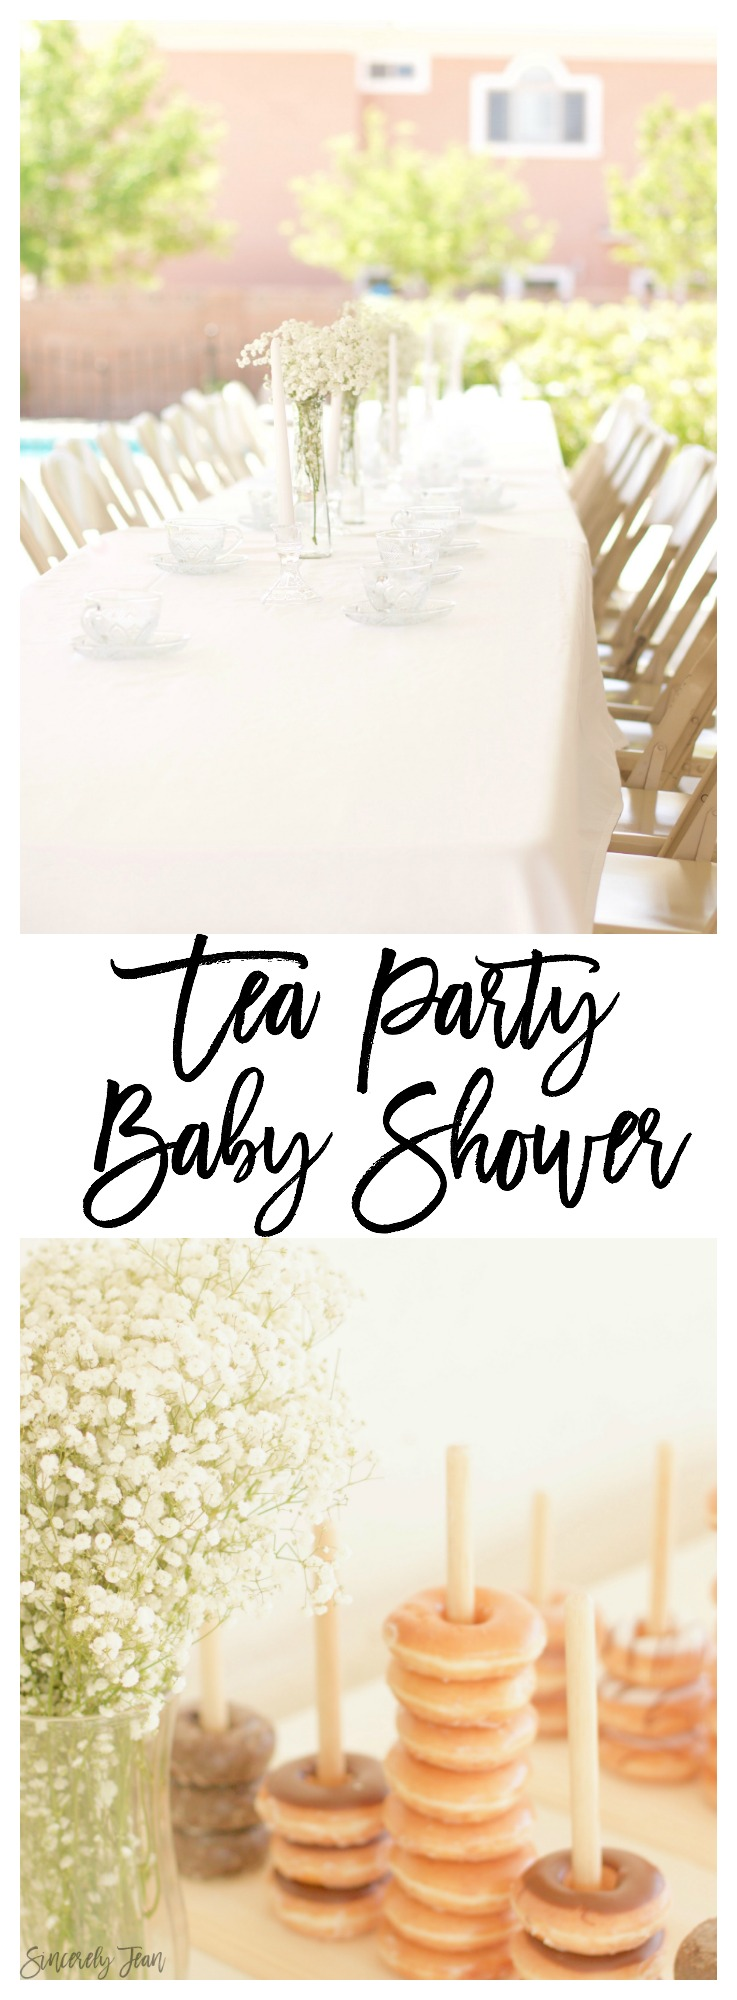 Tea Party Baby Shower - baby shower, simple, garden party, baby